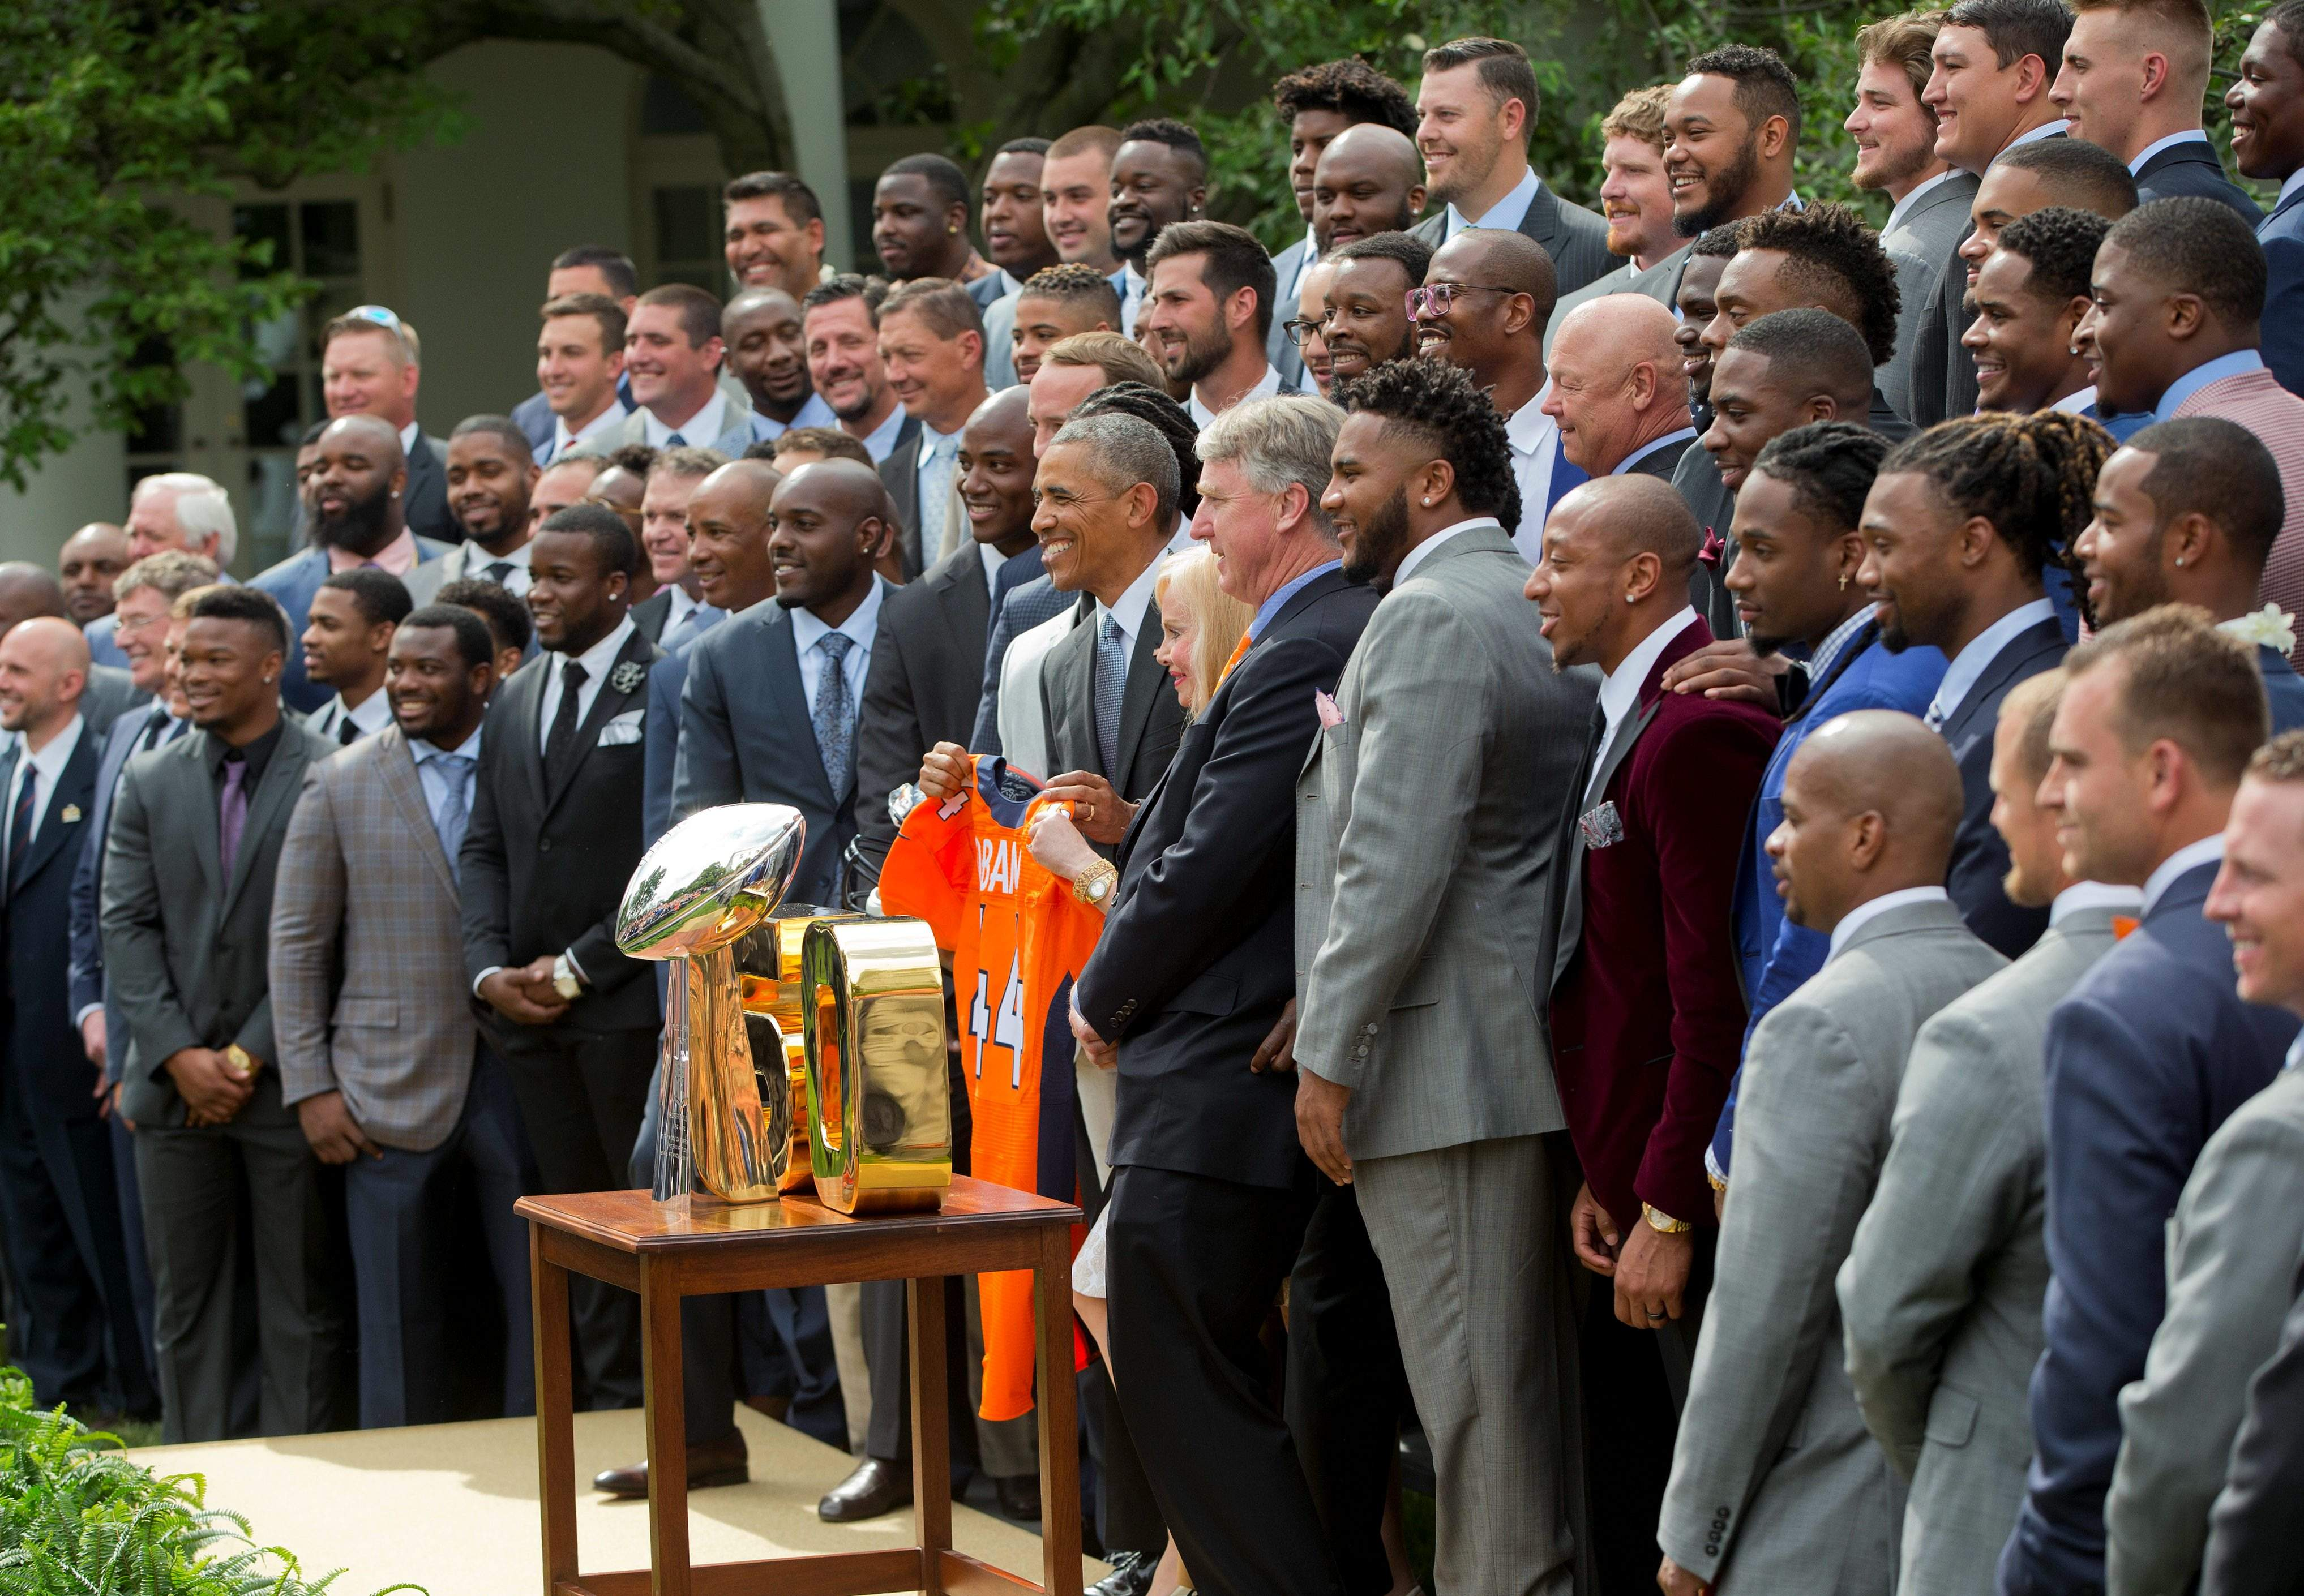 Obama with the Broncos